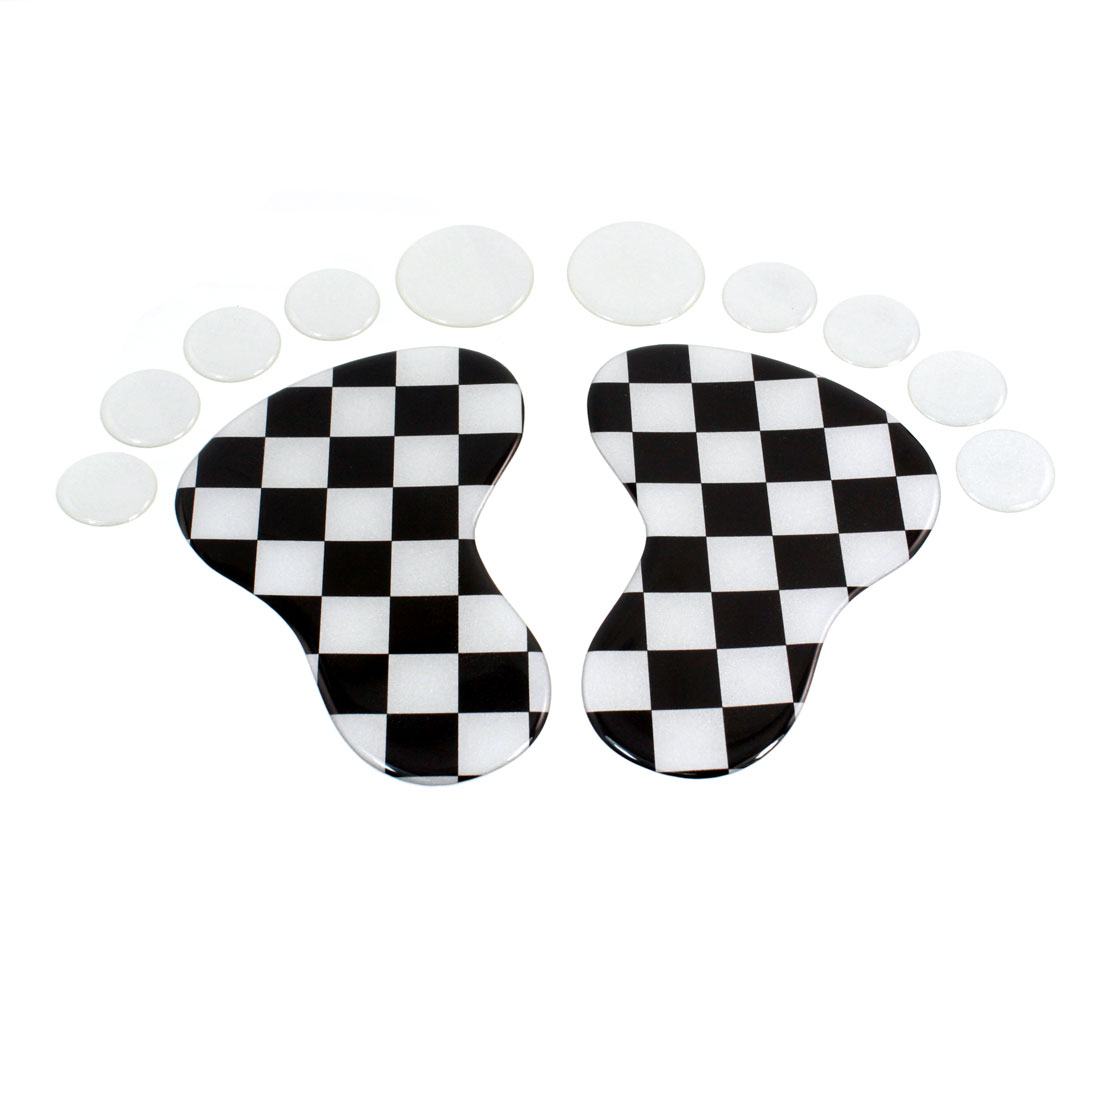 2 Pcs Black White Check Prints Footprint Badge Emblems Sticker for Auto Car